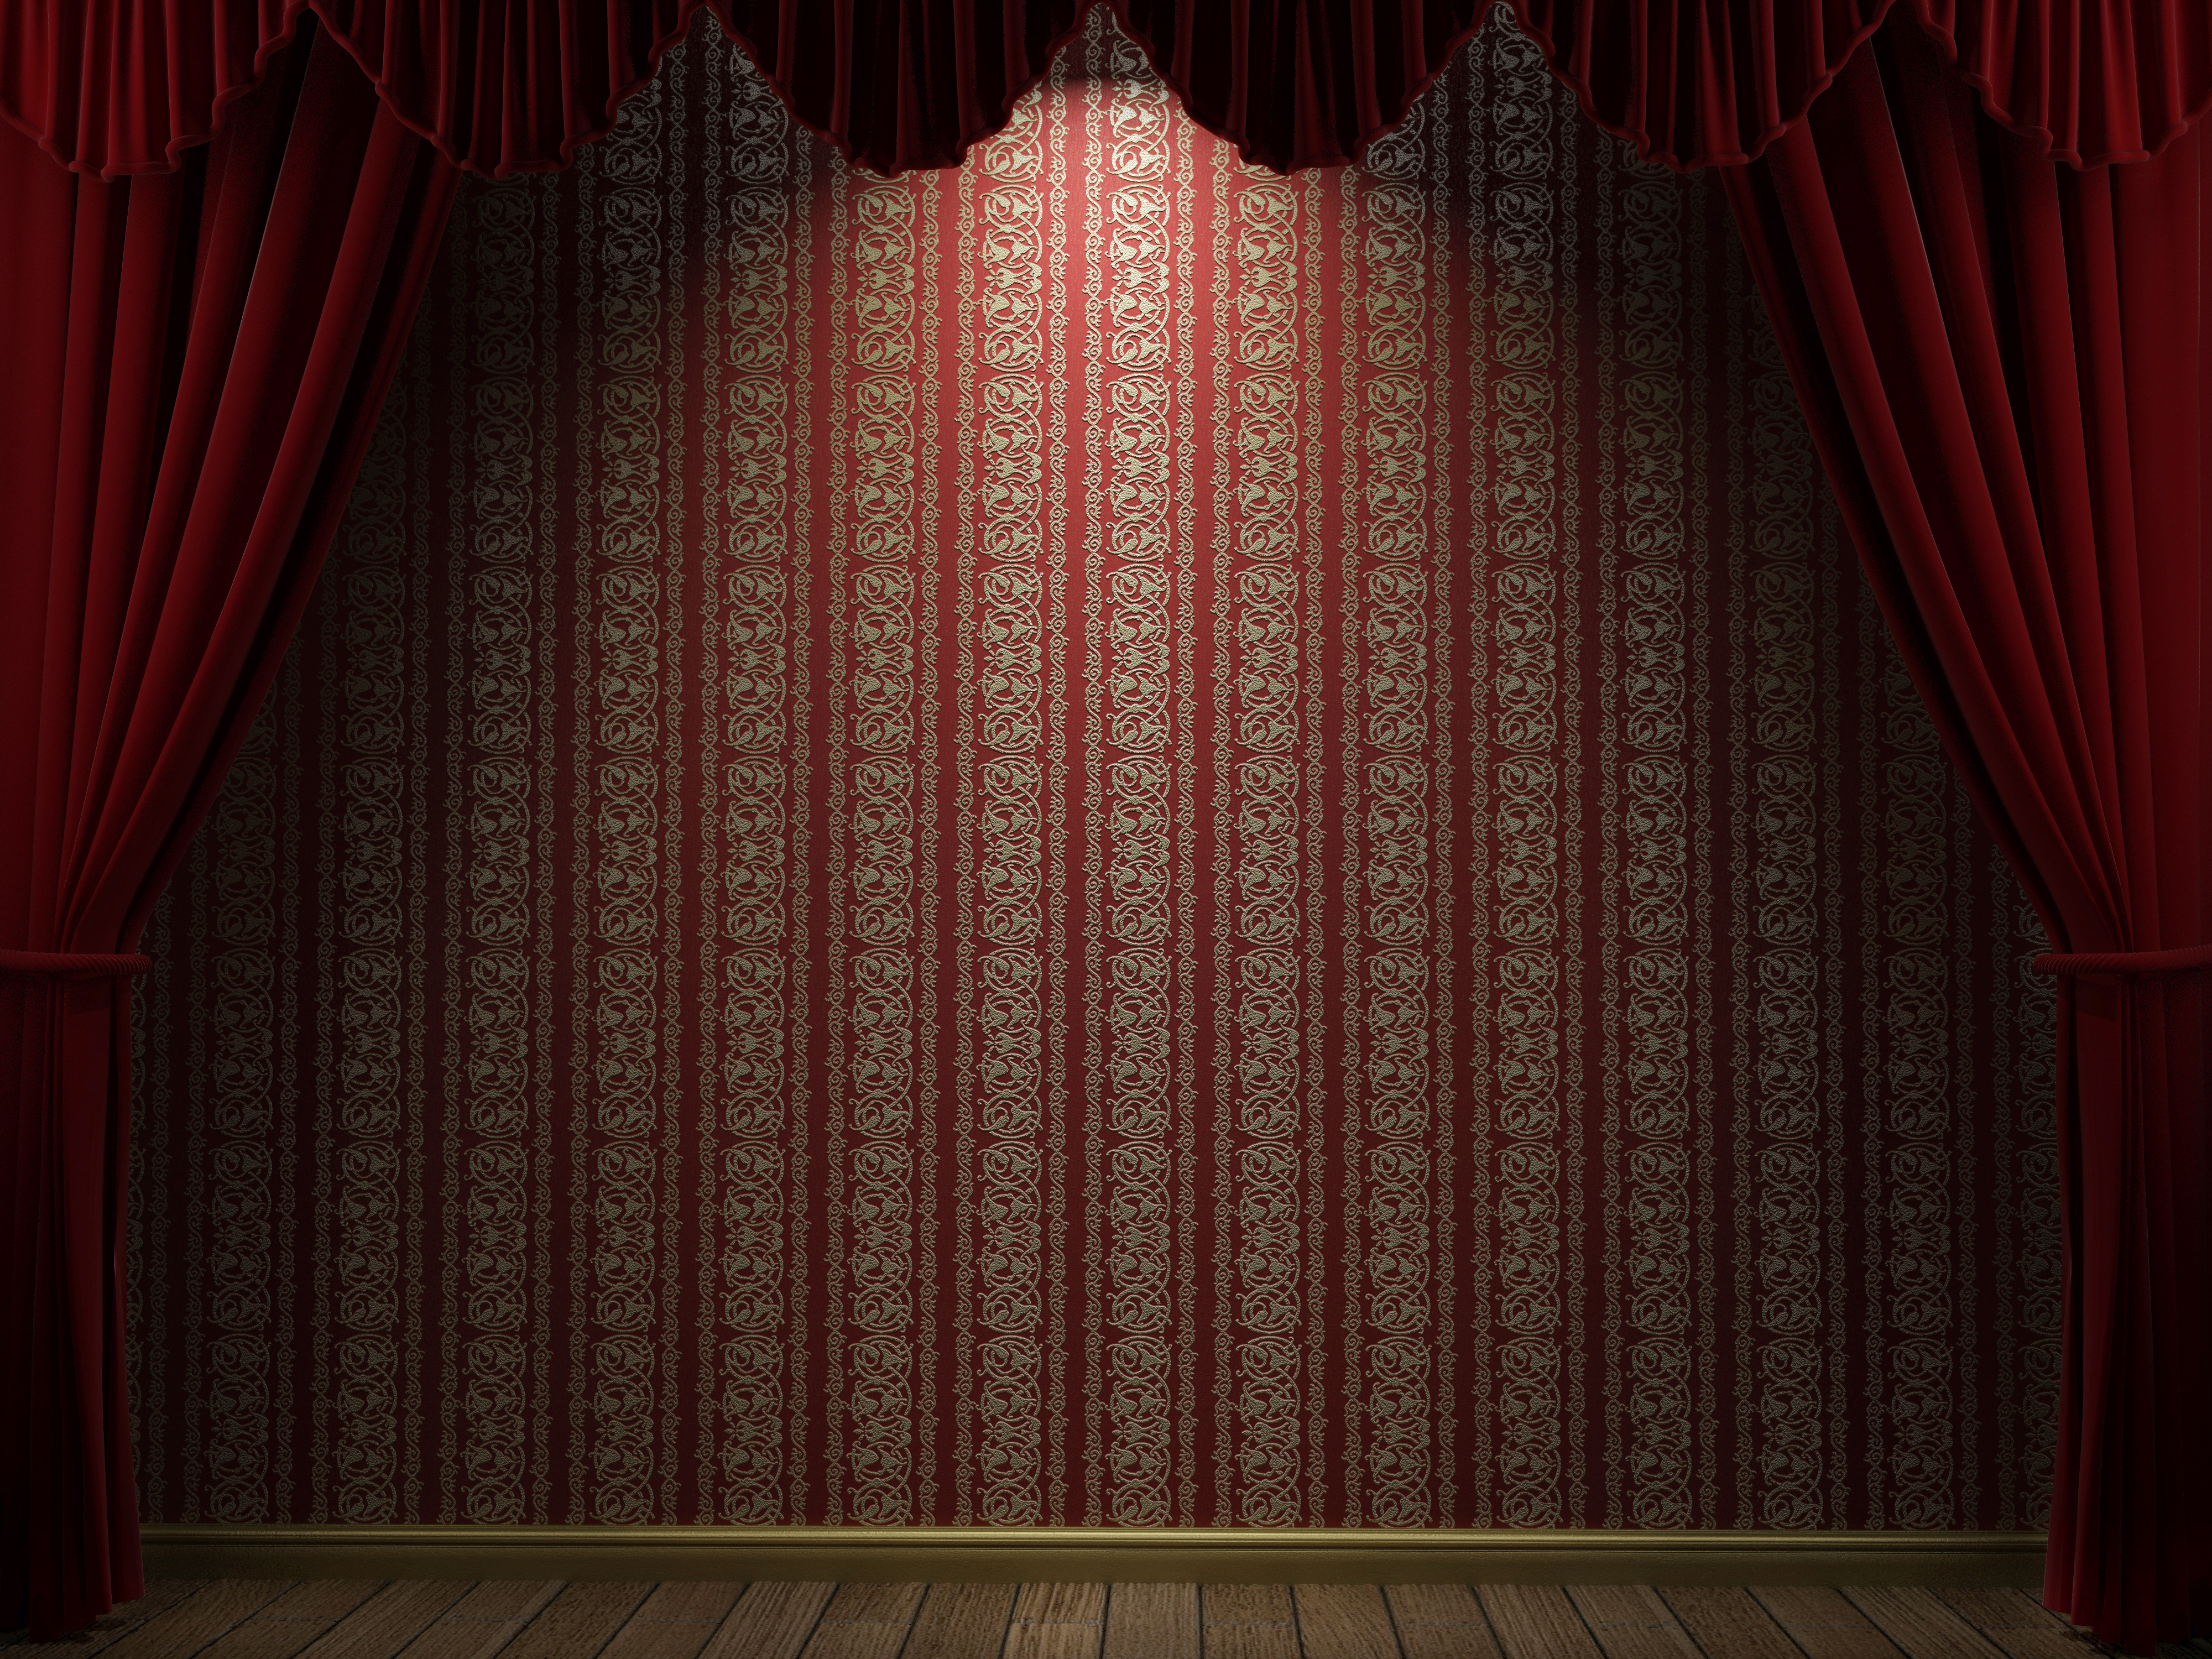 Bl blue stage curtains background - Stage Curtain Background Gallery 183 Backgrounds Stage